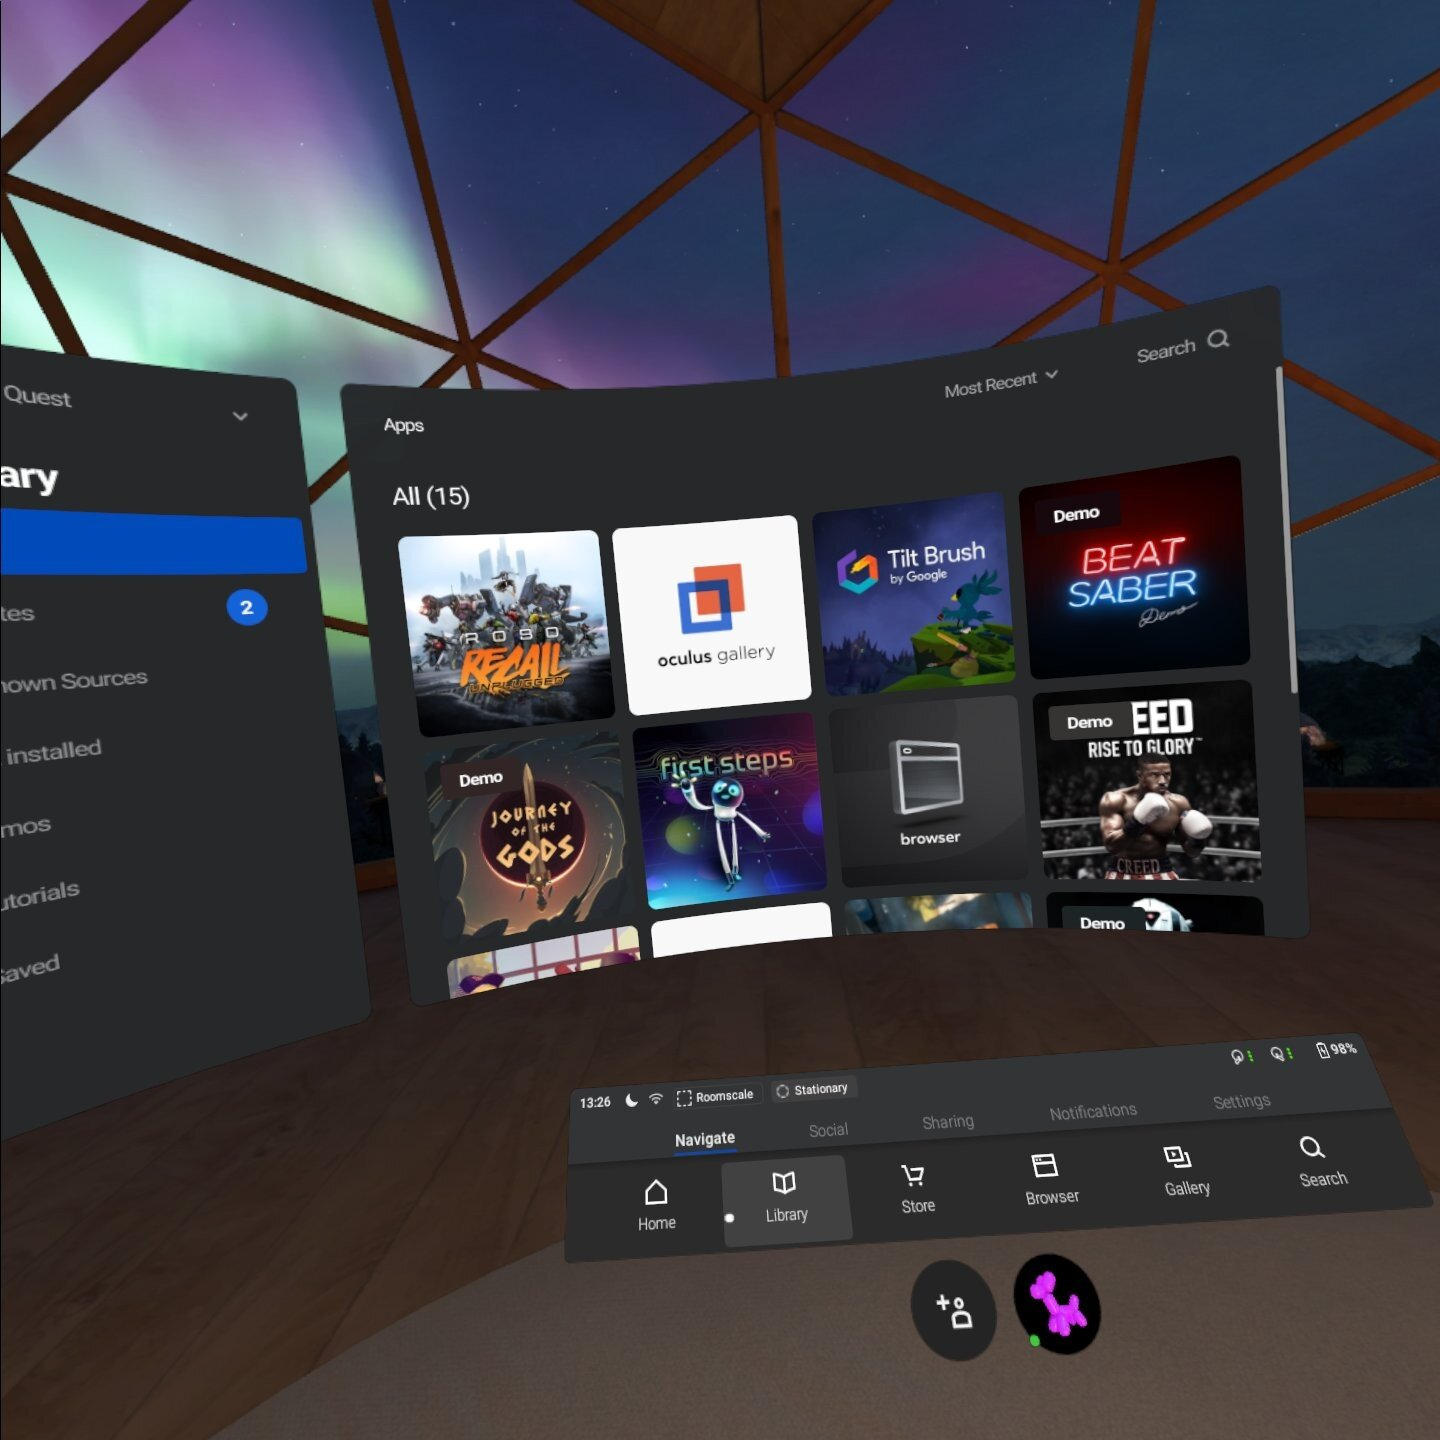 Oculus_Quest_Interface.jpg